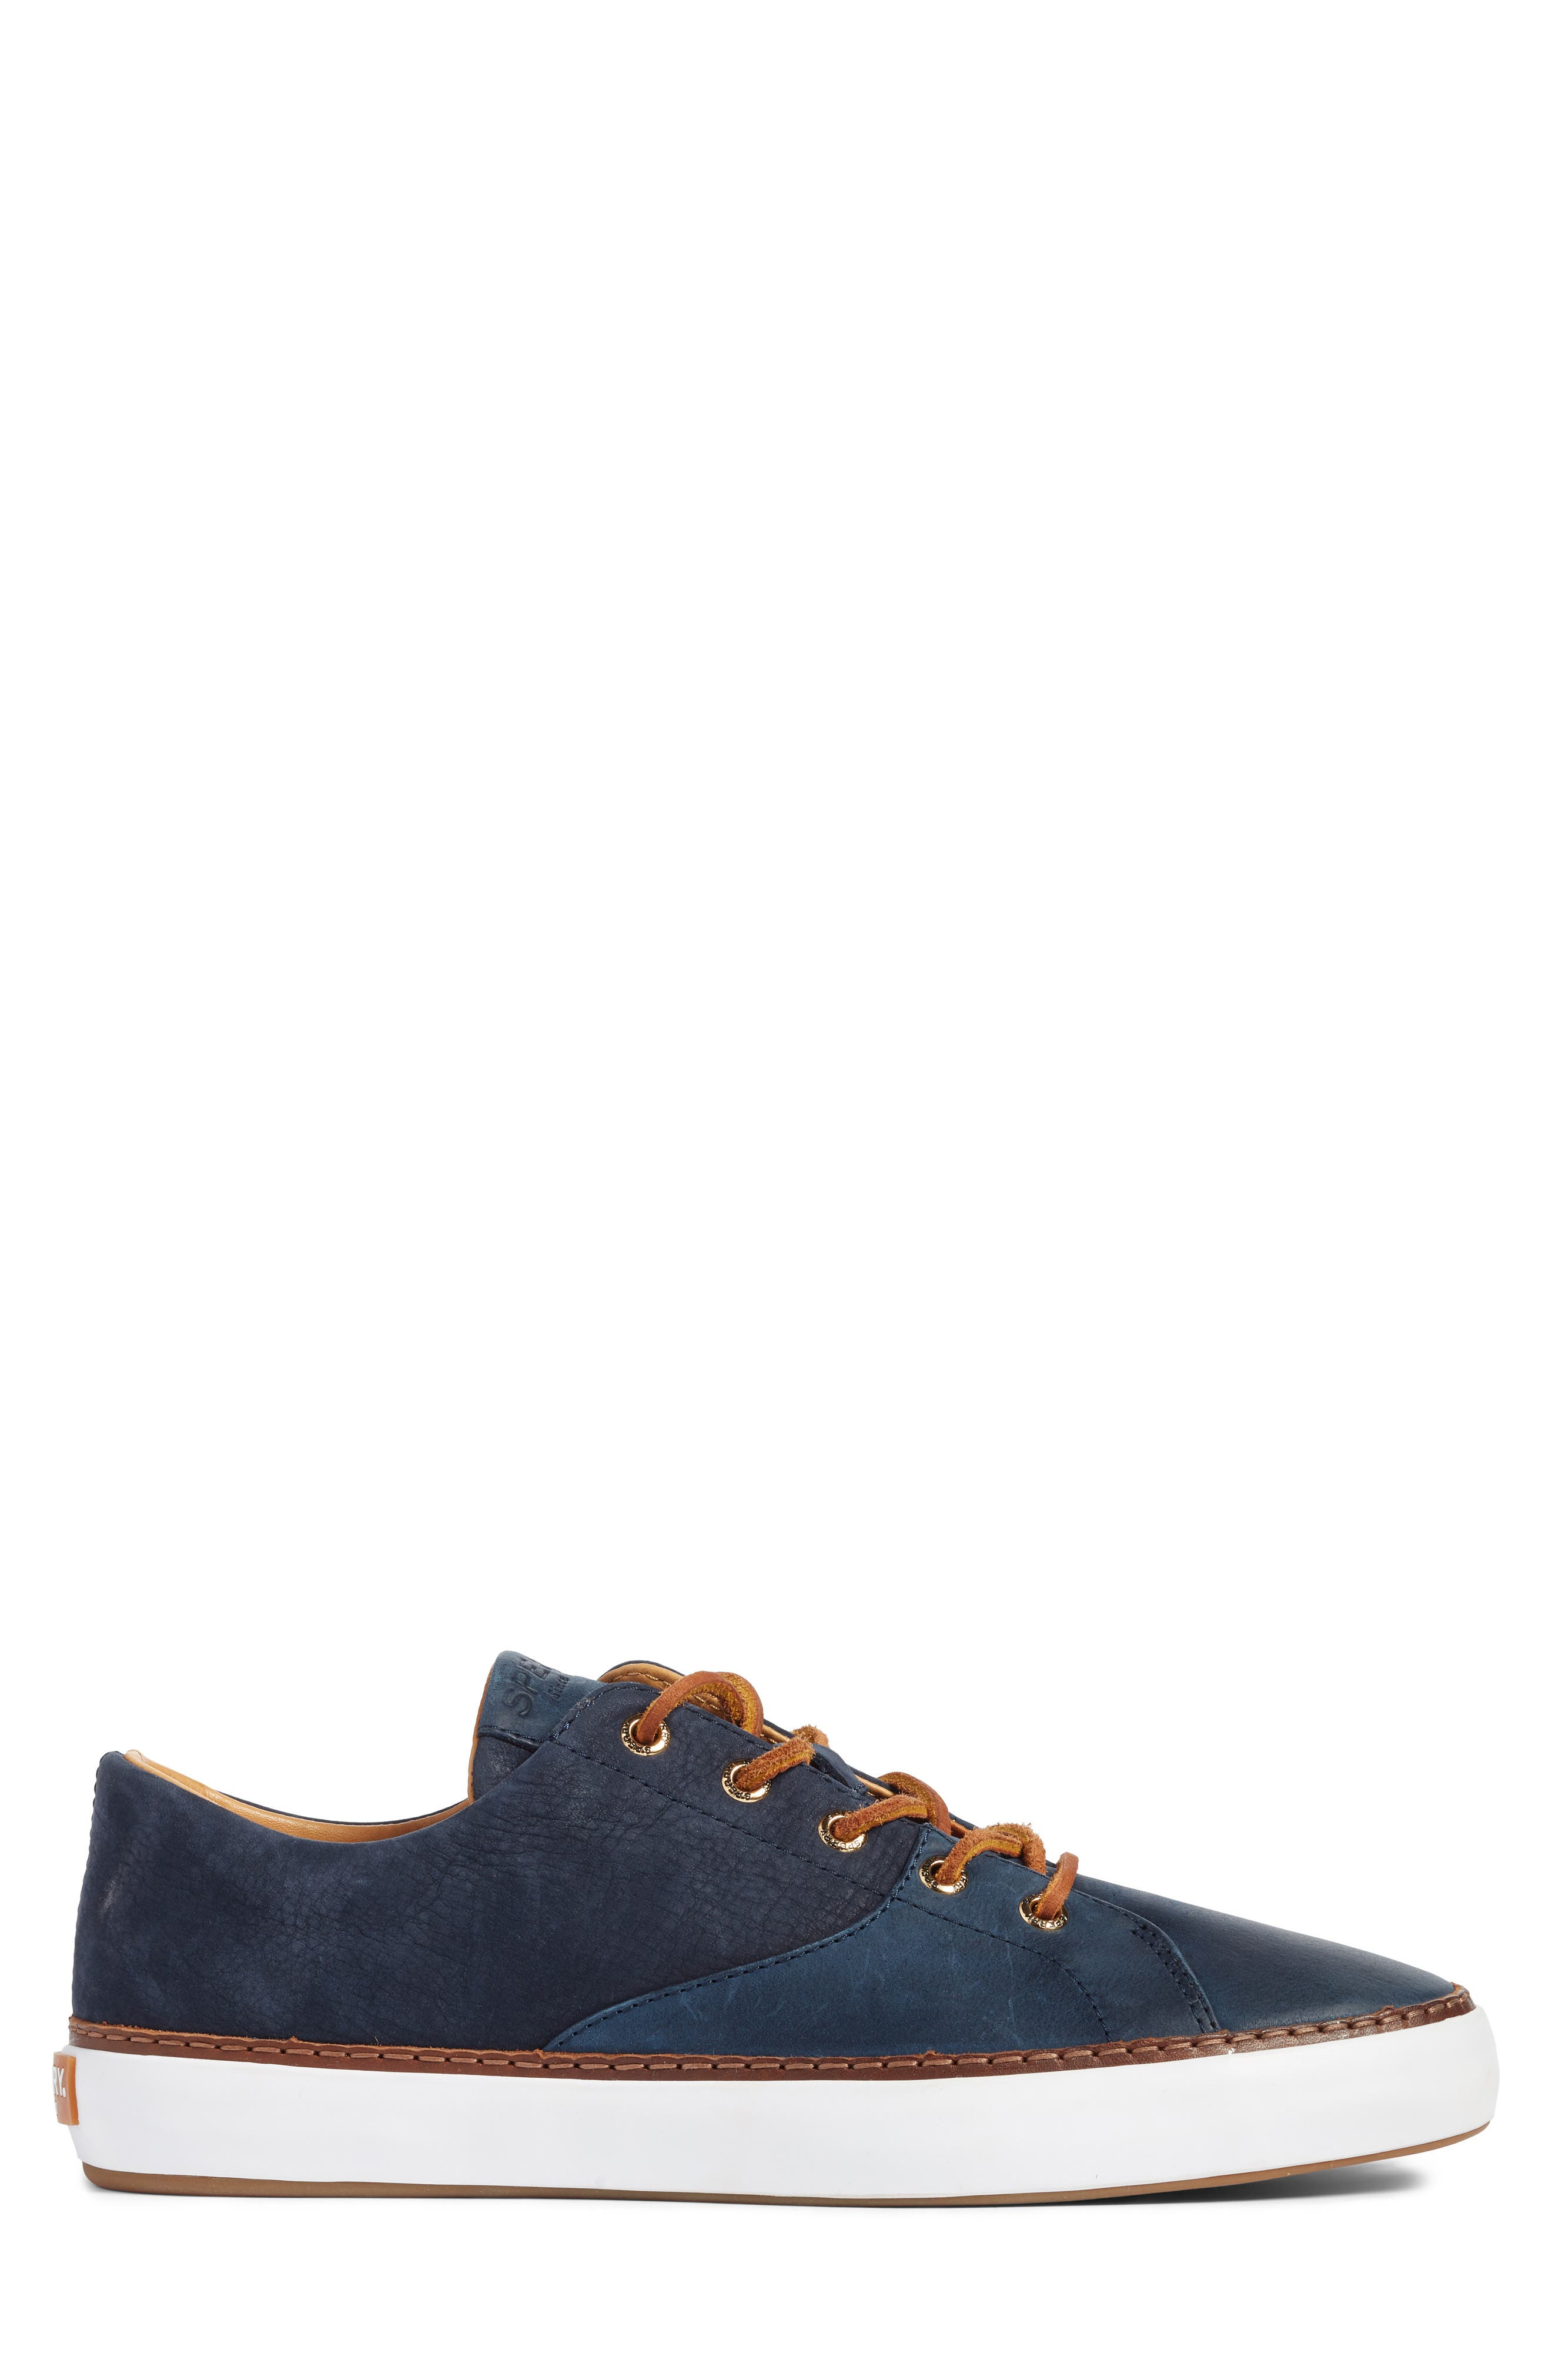 Gold Cup Haven Sneaker,                             Alternate thumbnail 3, color,                             Navy Leather